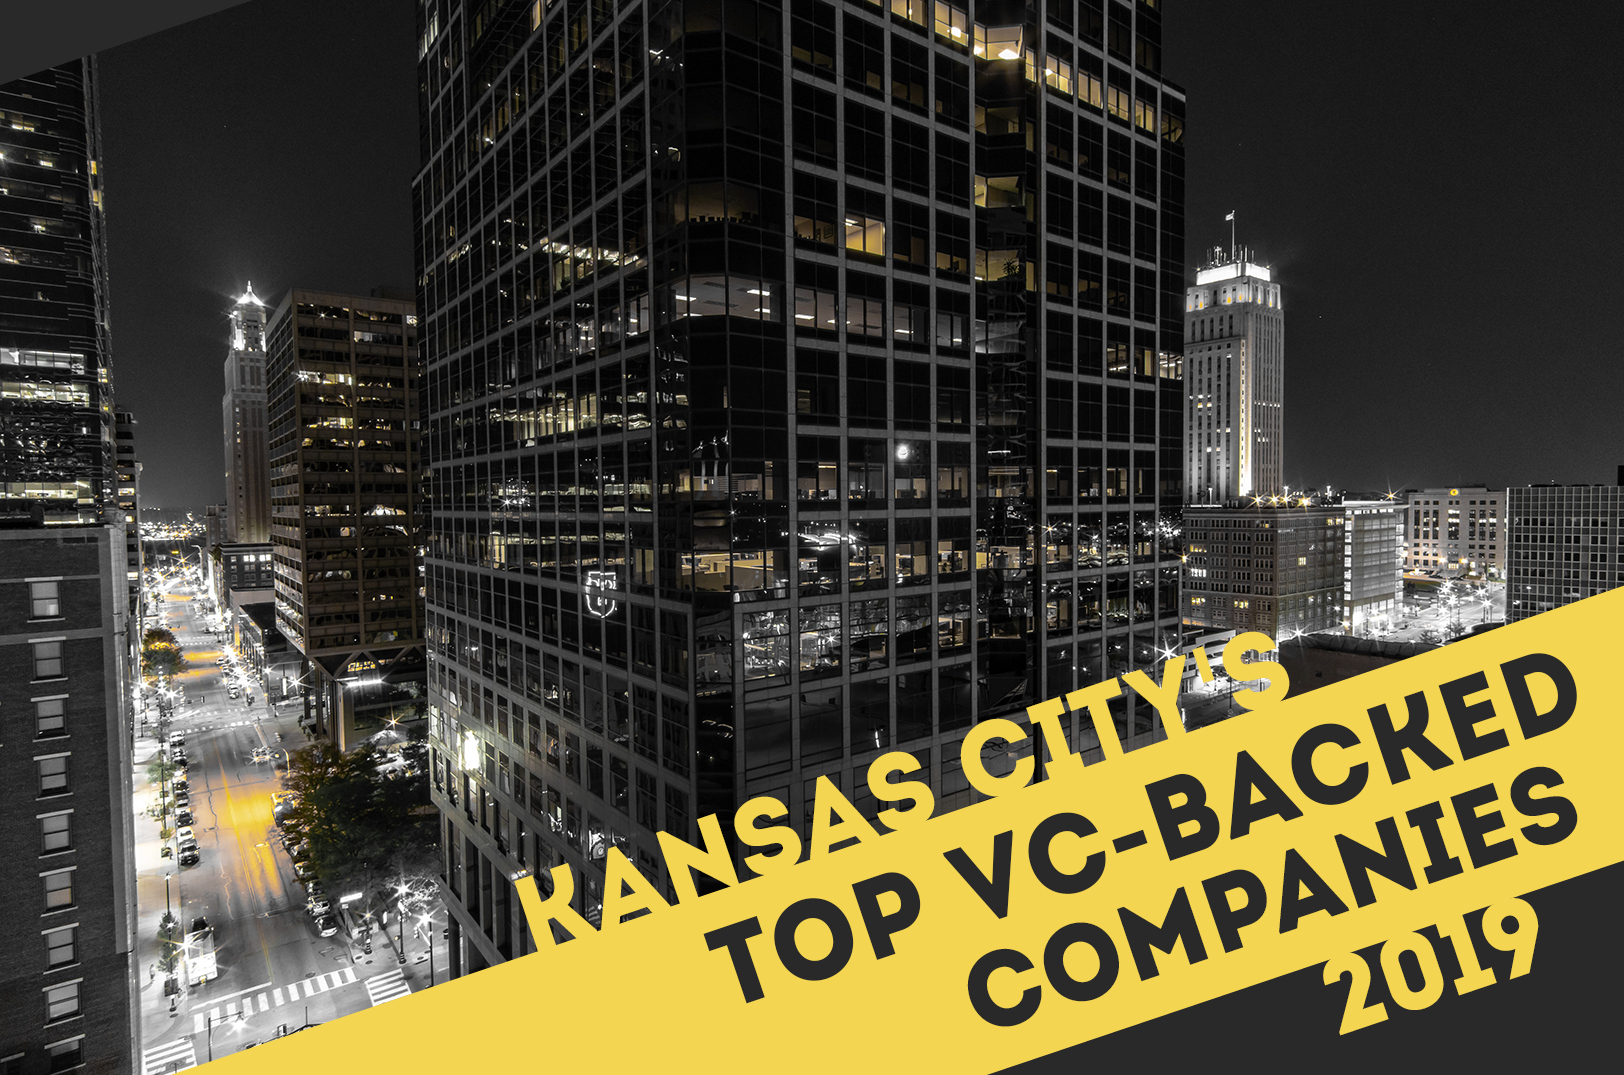 Kansas City's Top VC-Backed Companies in 2019